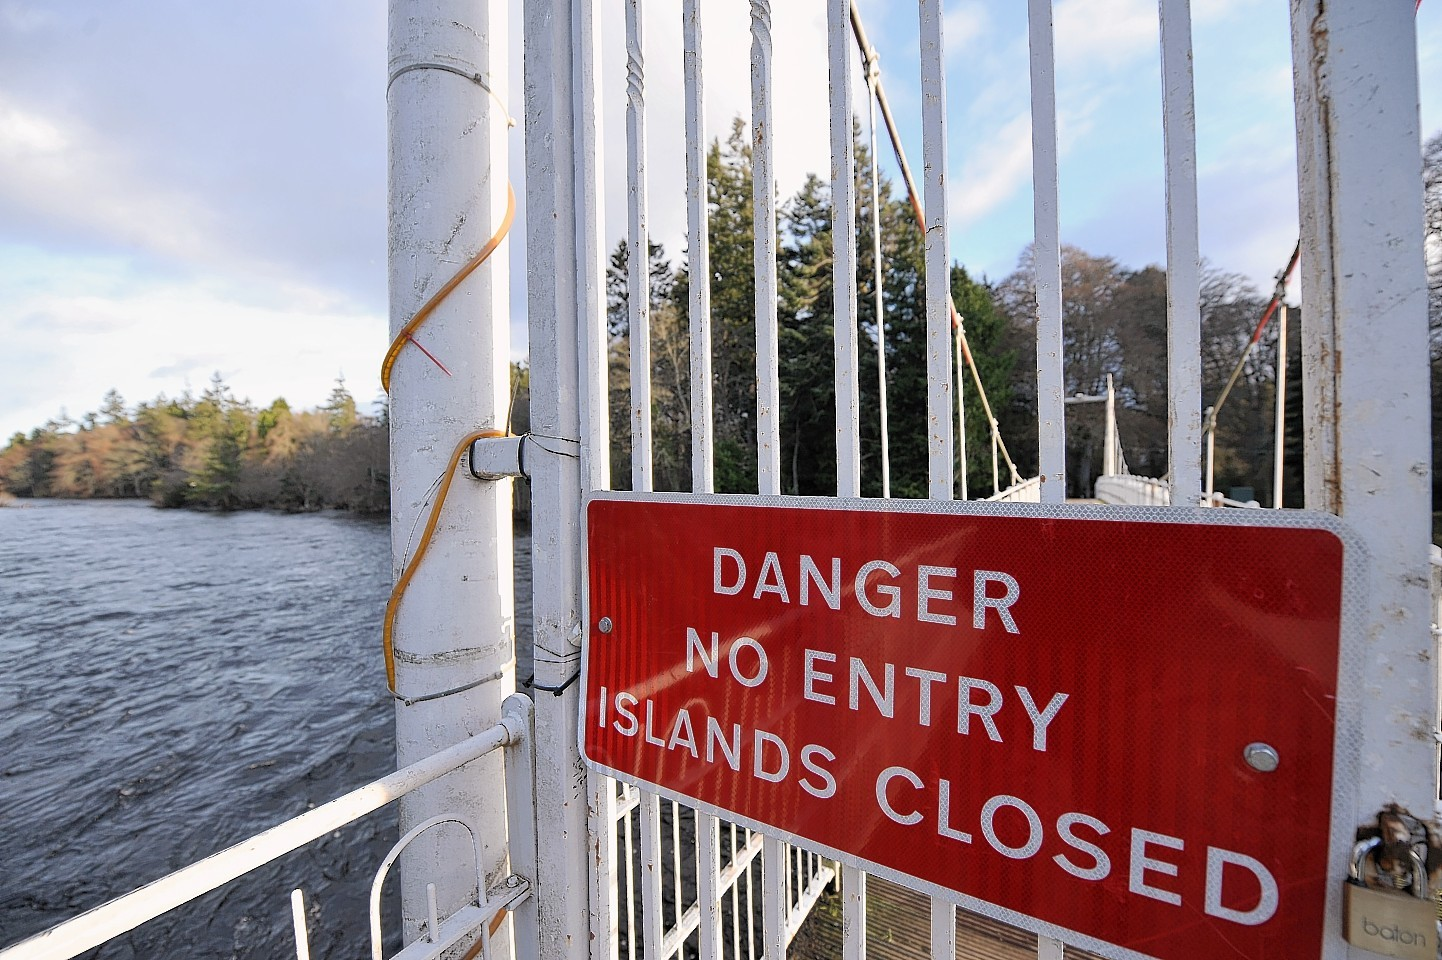 David Stewart MSP is concerned about how often Ness Islands has to close due to flooding